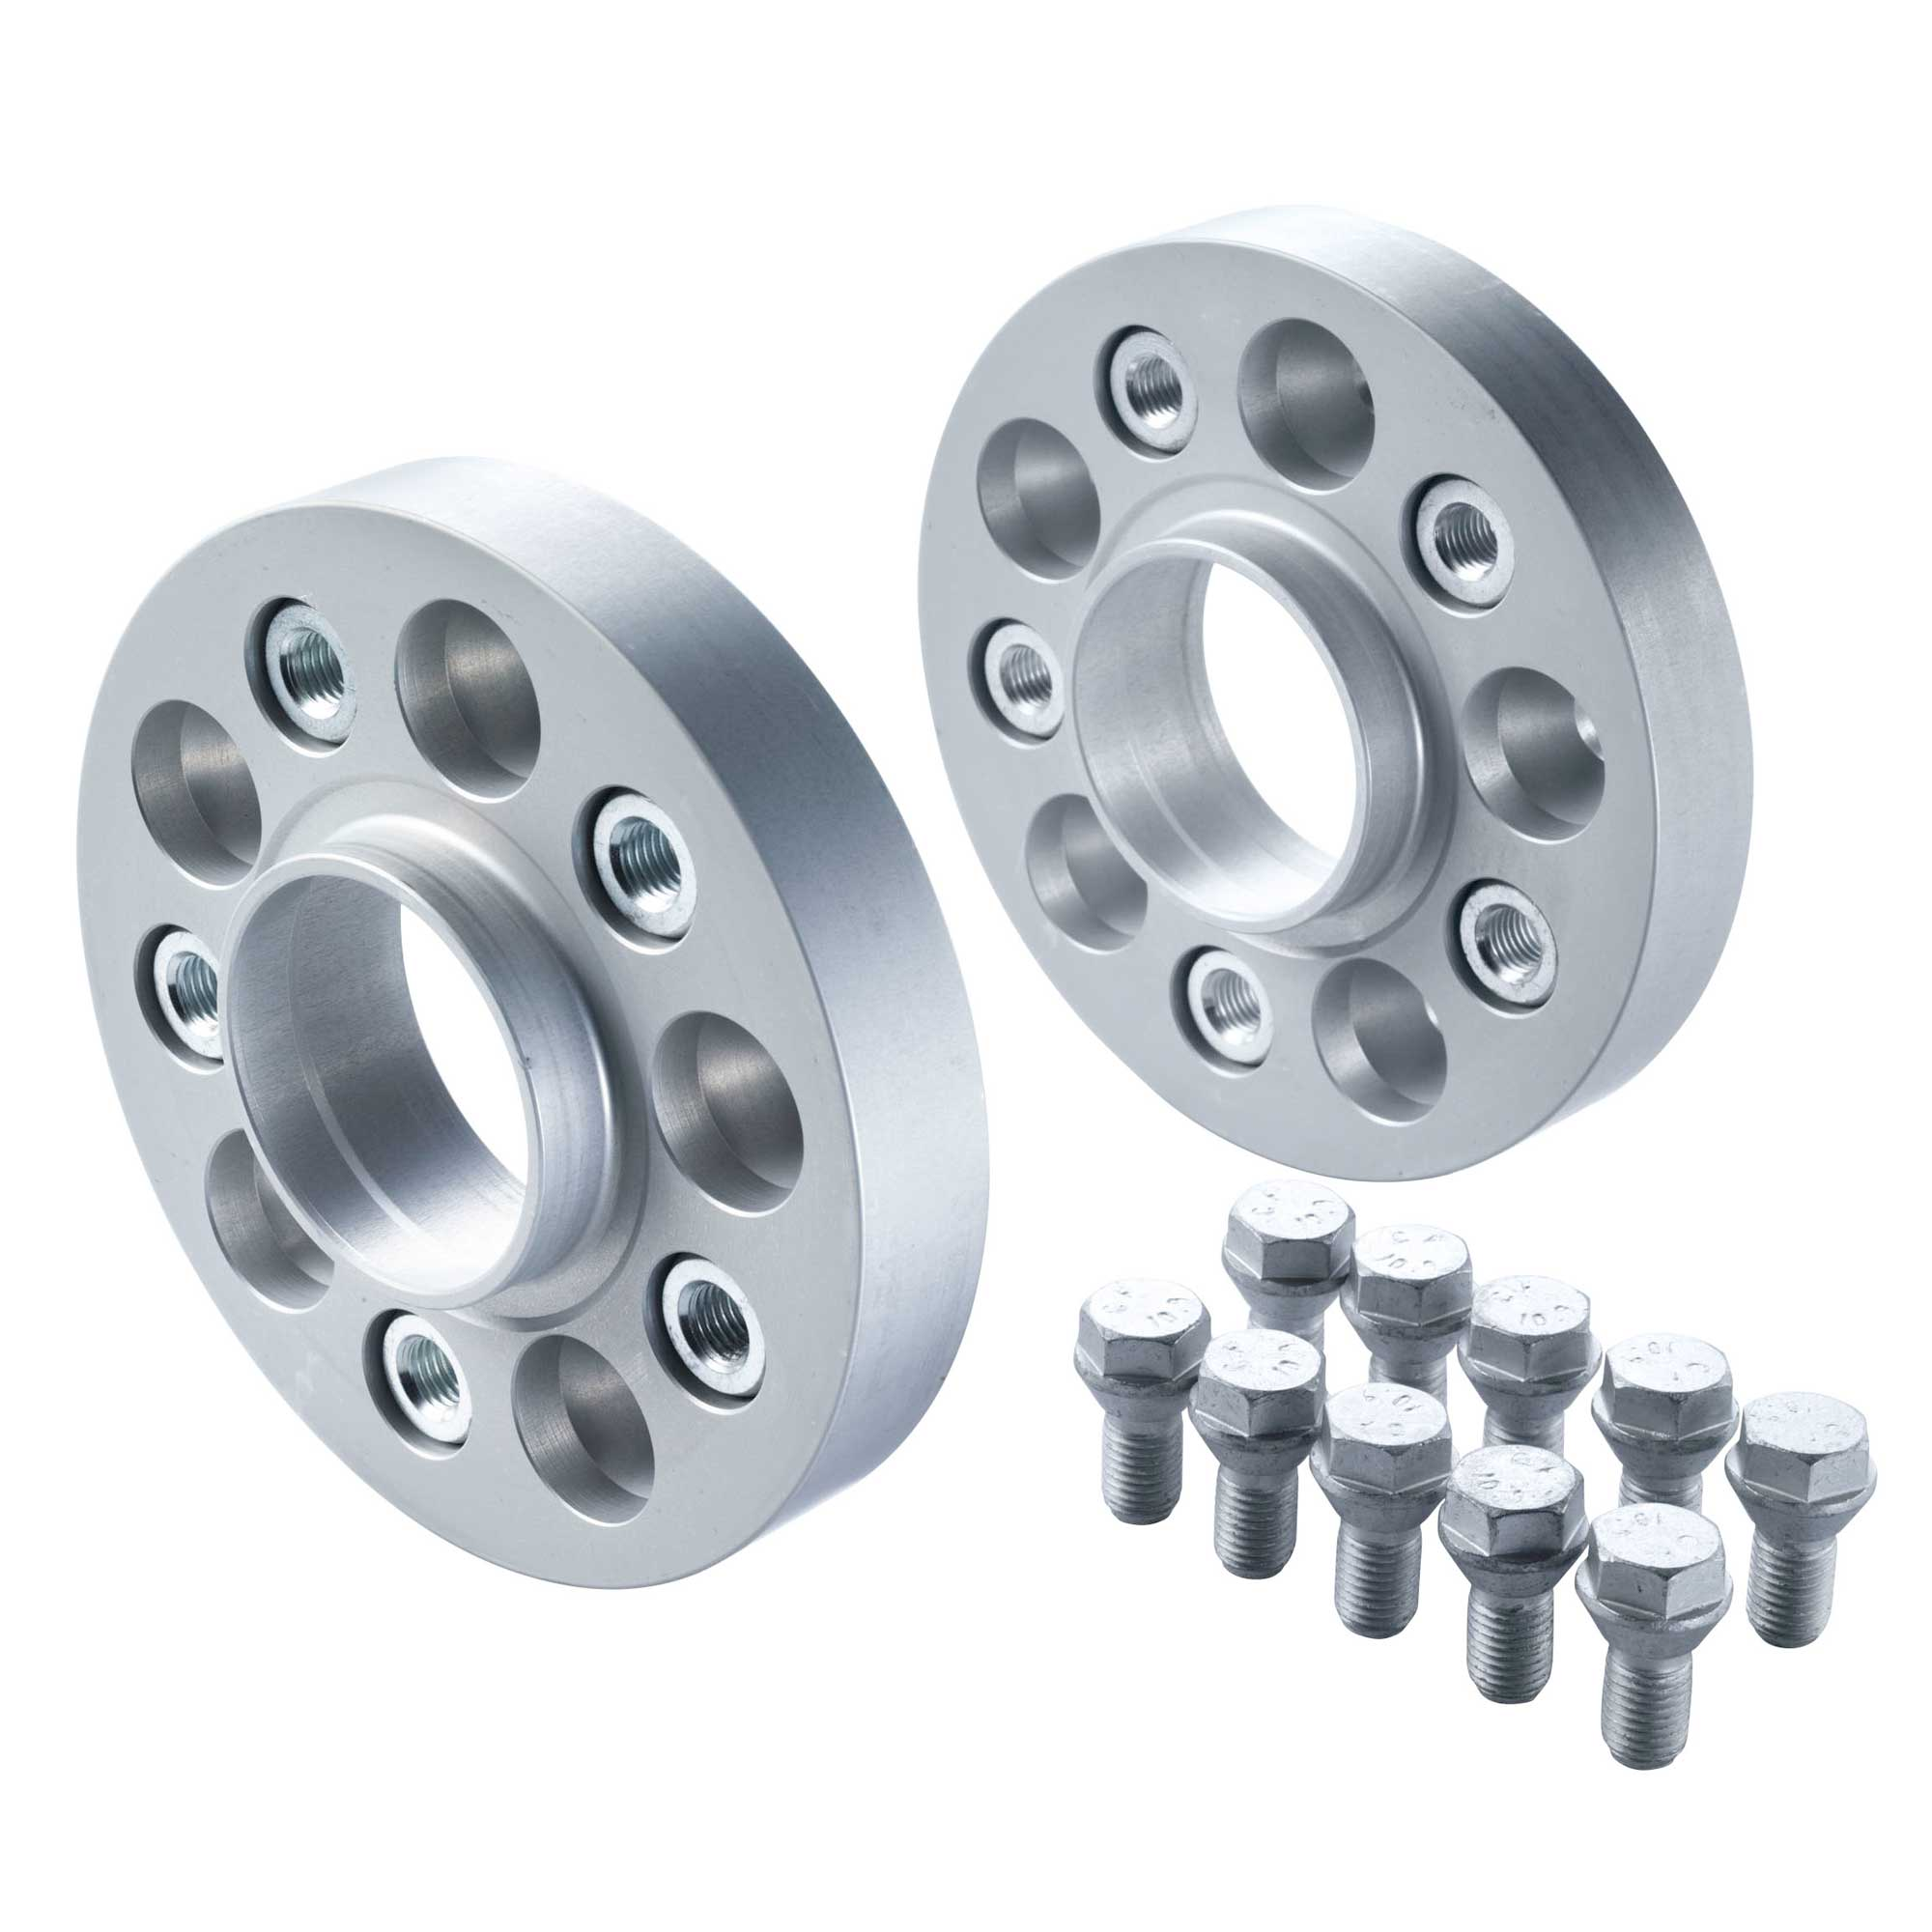 2 x 5mm Hubcentric 5x112 66.6 Wheel Spacers fits Audi A5 2007+